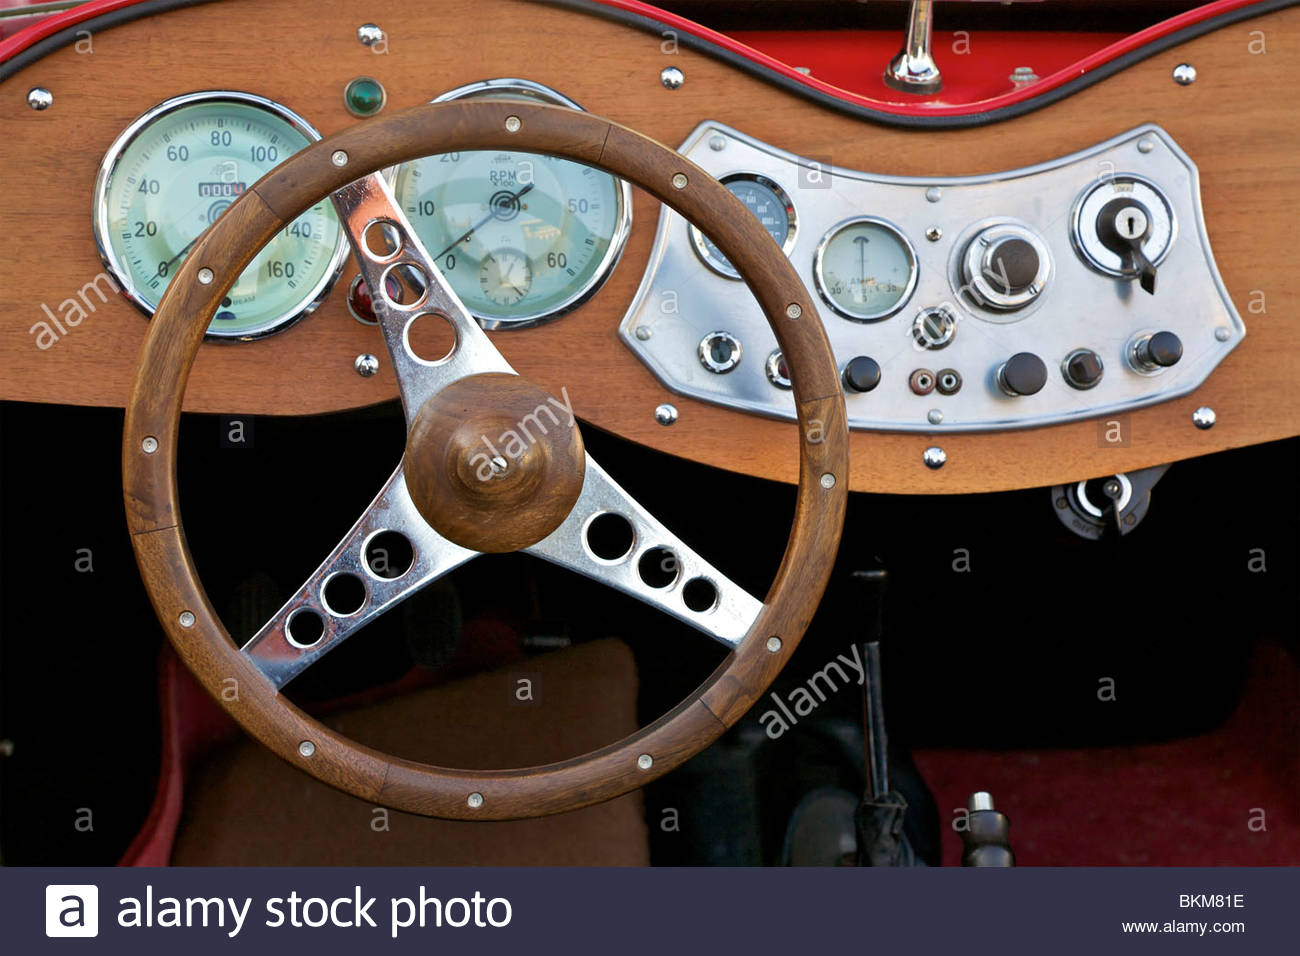 Dashboard and steering wheel of a MG T-Type antique car from the early 1950's. Leipzig, Germany. - Stock Image